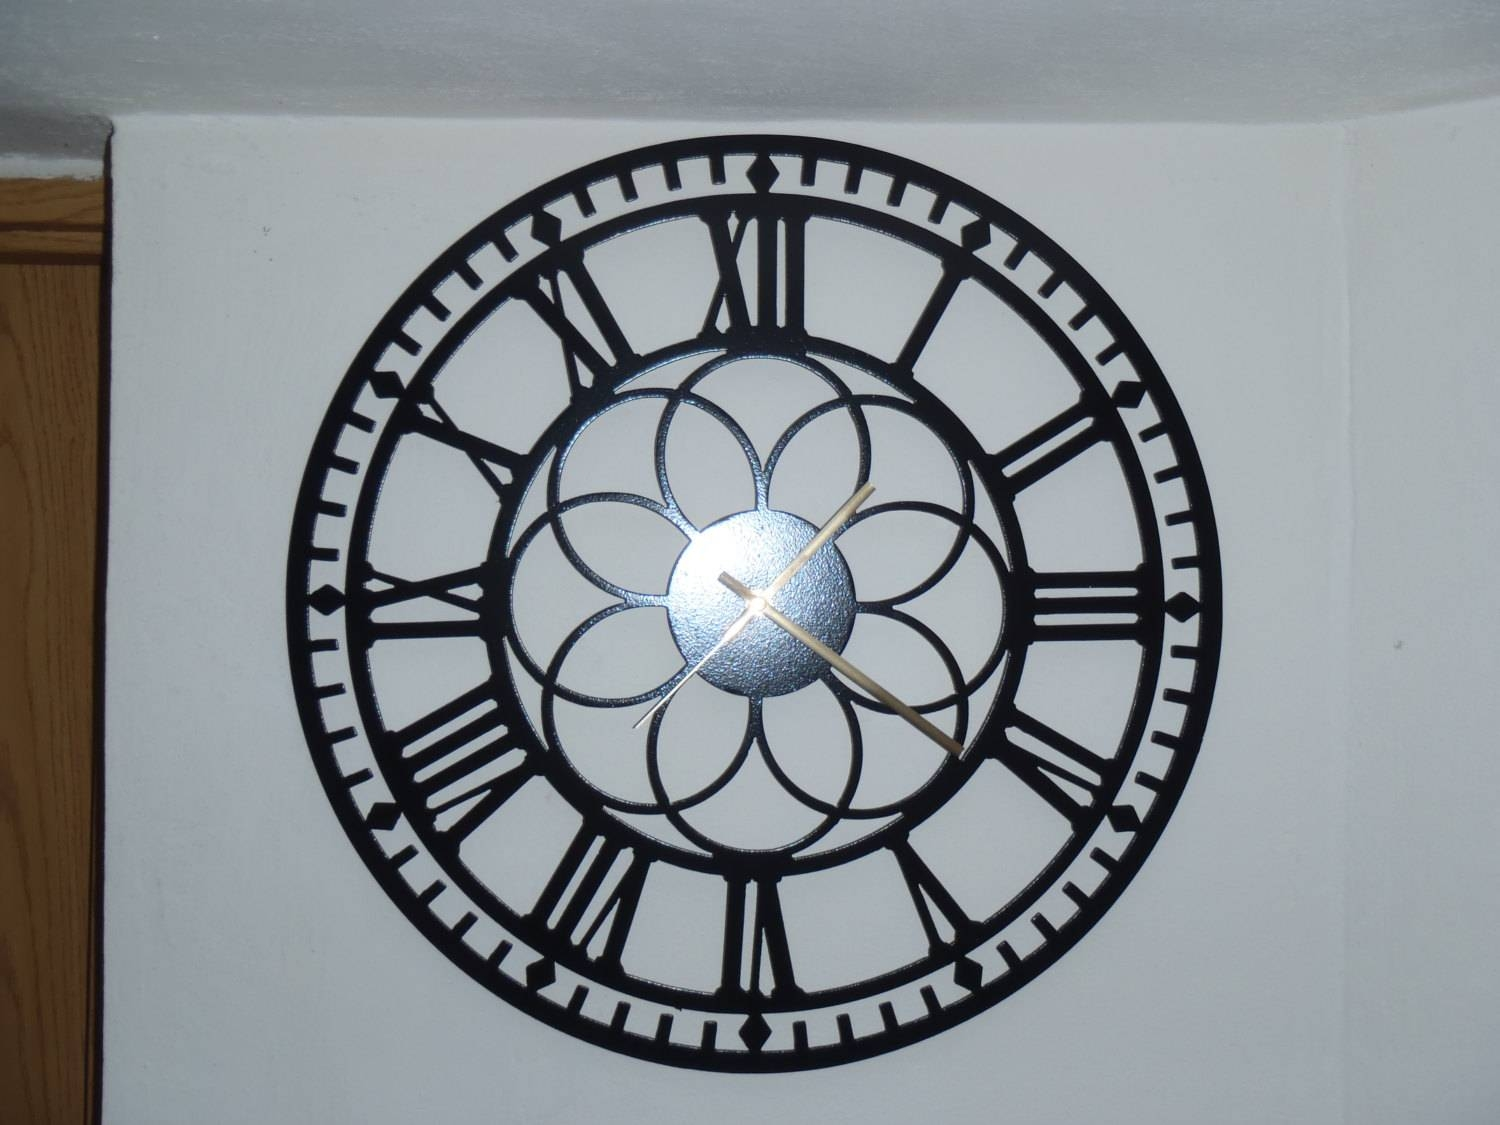 20 Clock Roman Numbers Metal Wall Art Black Metal Inside Recent Black Metal  Wall Art Decor